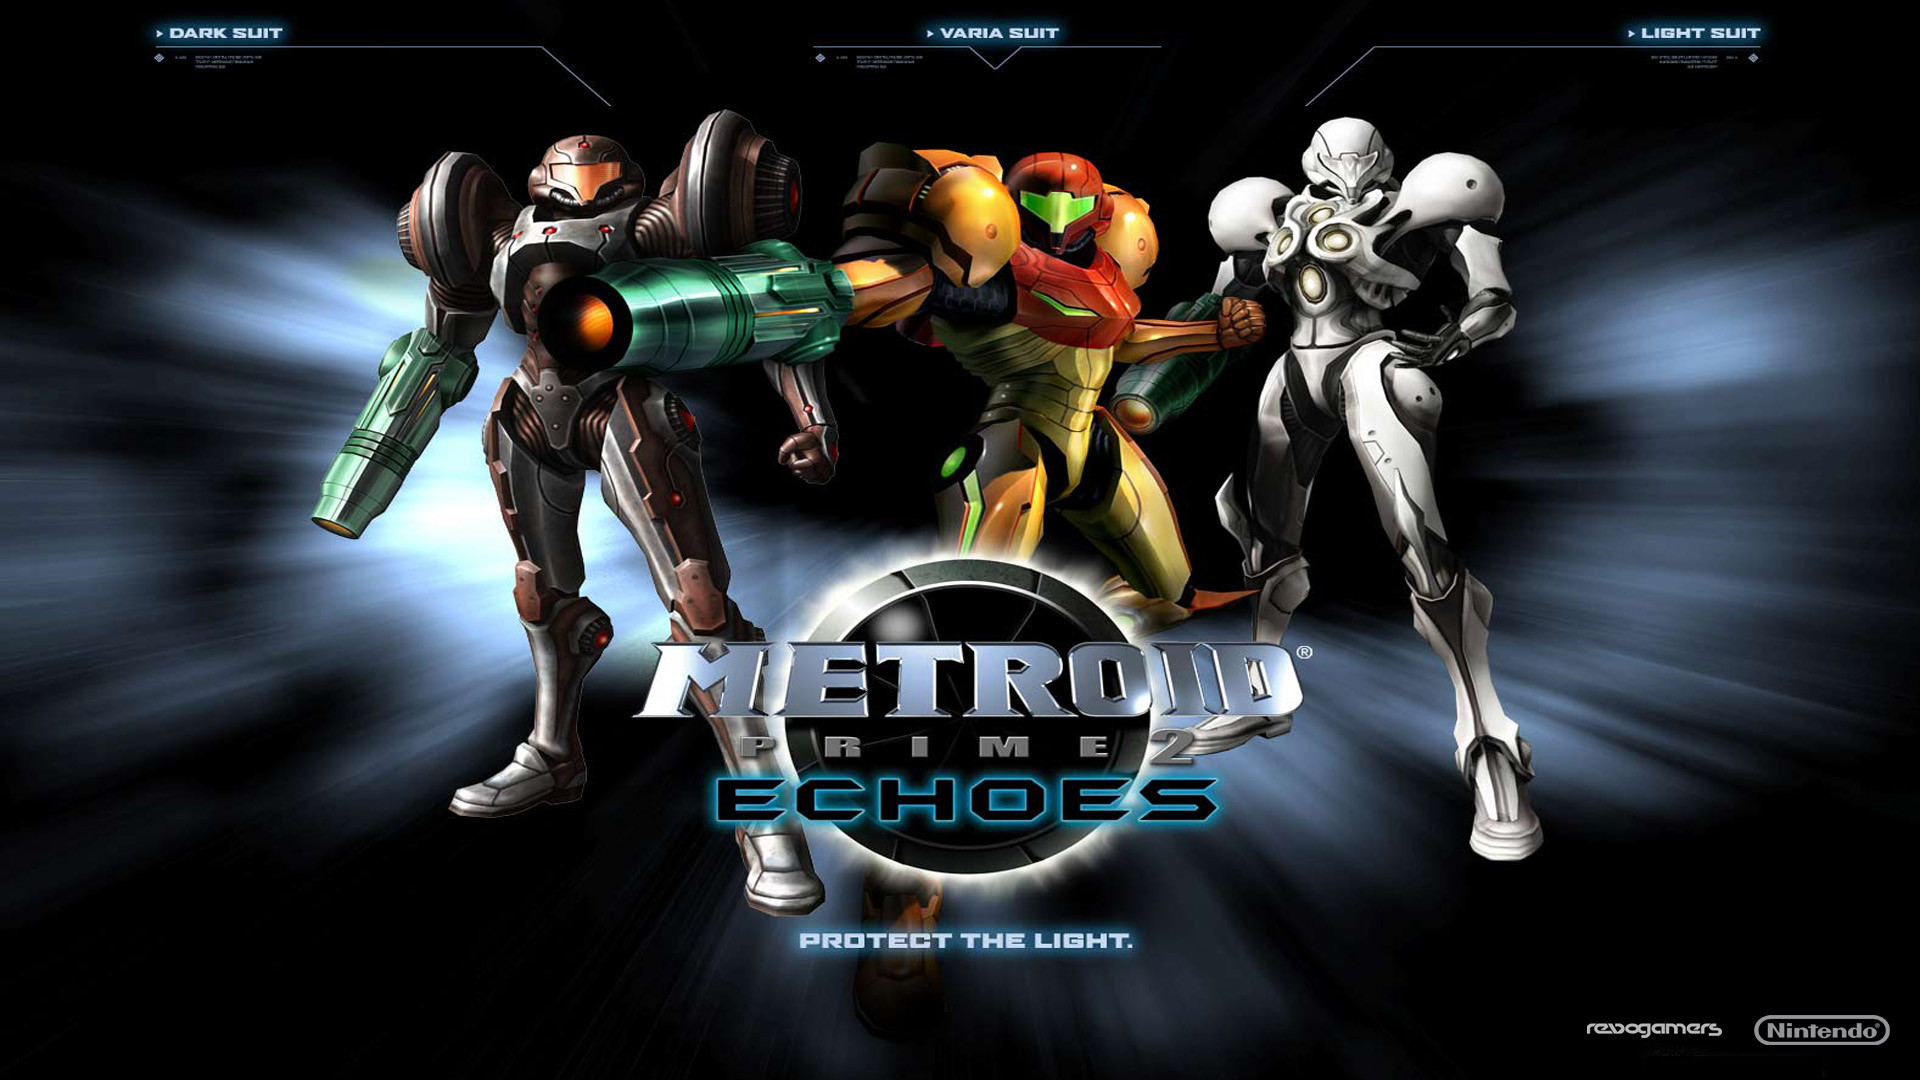 2 Metroid Prime 2: Echoes HD Wallpapers | Backgrounds – Wallpaper Abyss